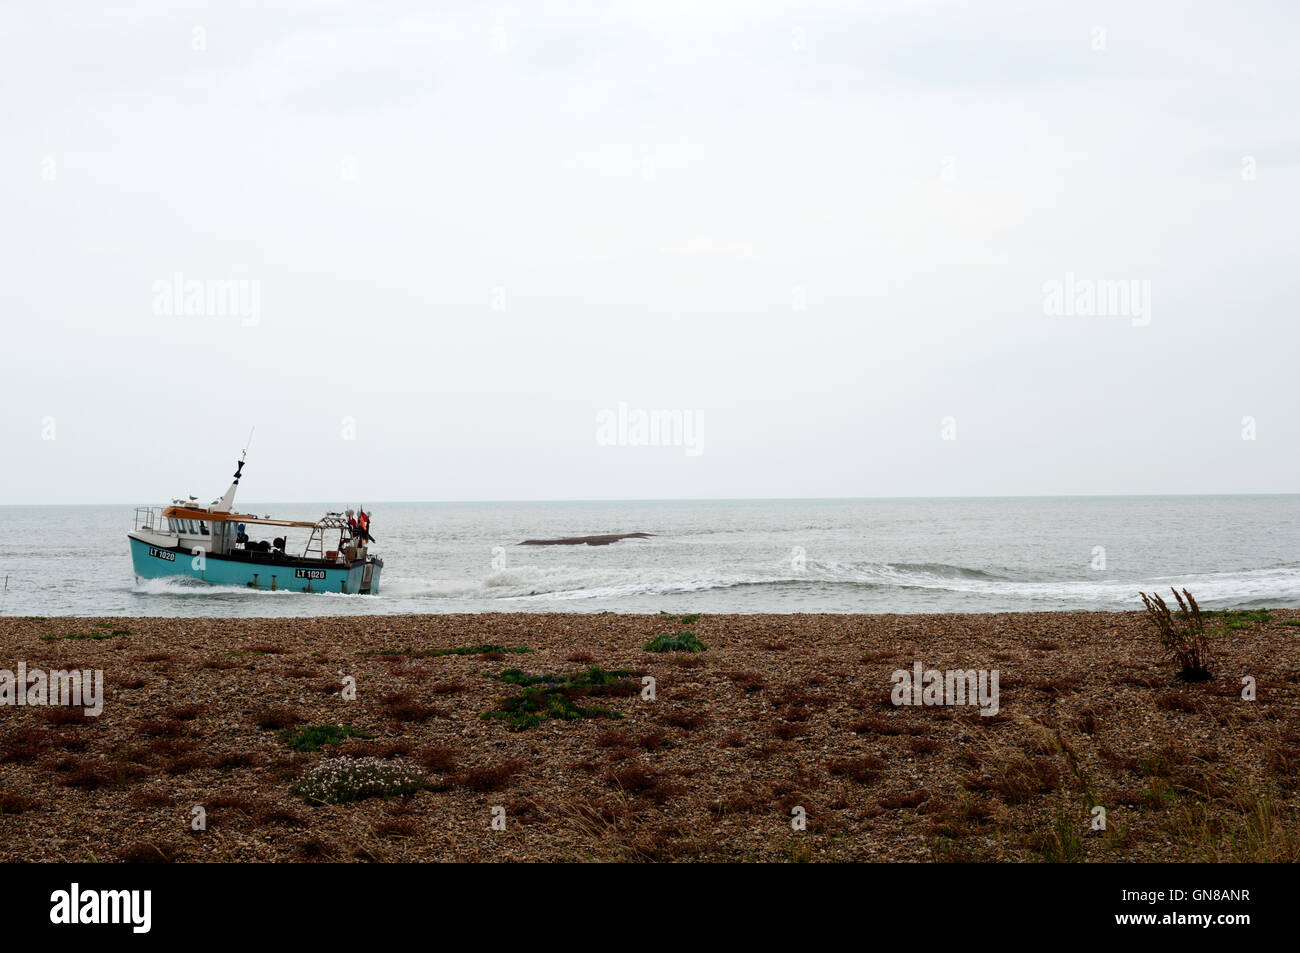 Fishing boat returning to Orford at the entrance to the river Alde, Shingle Street, Suffolk, UK. - Stock Image